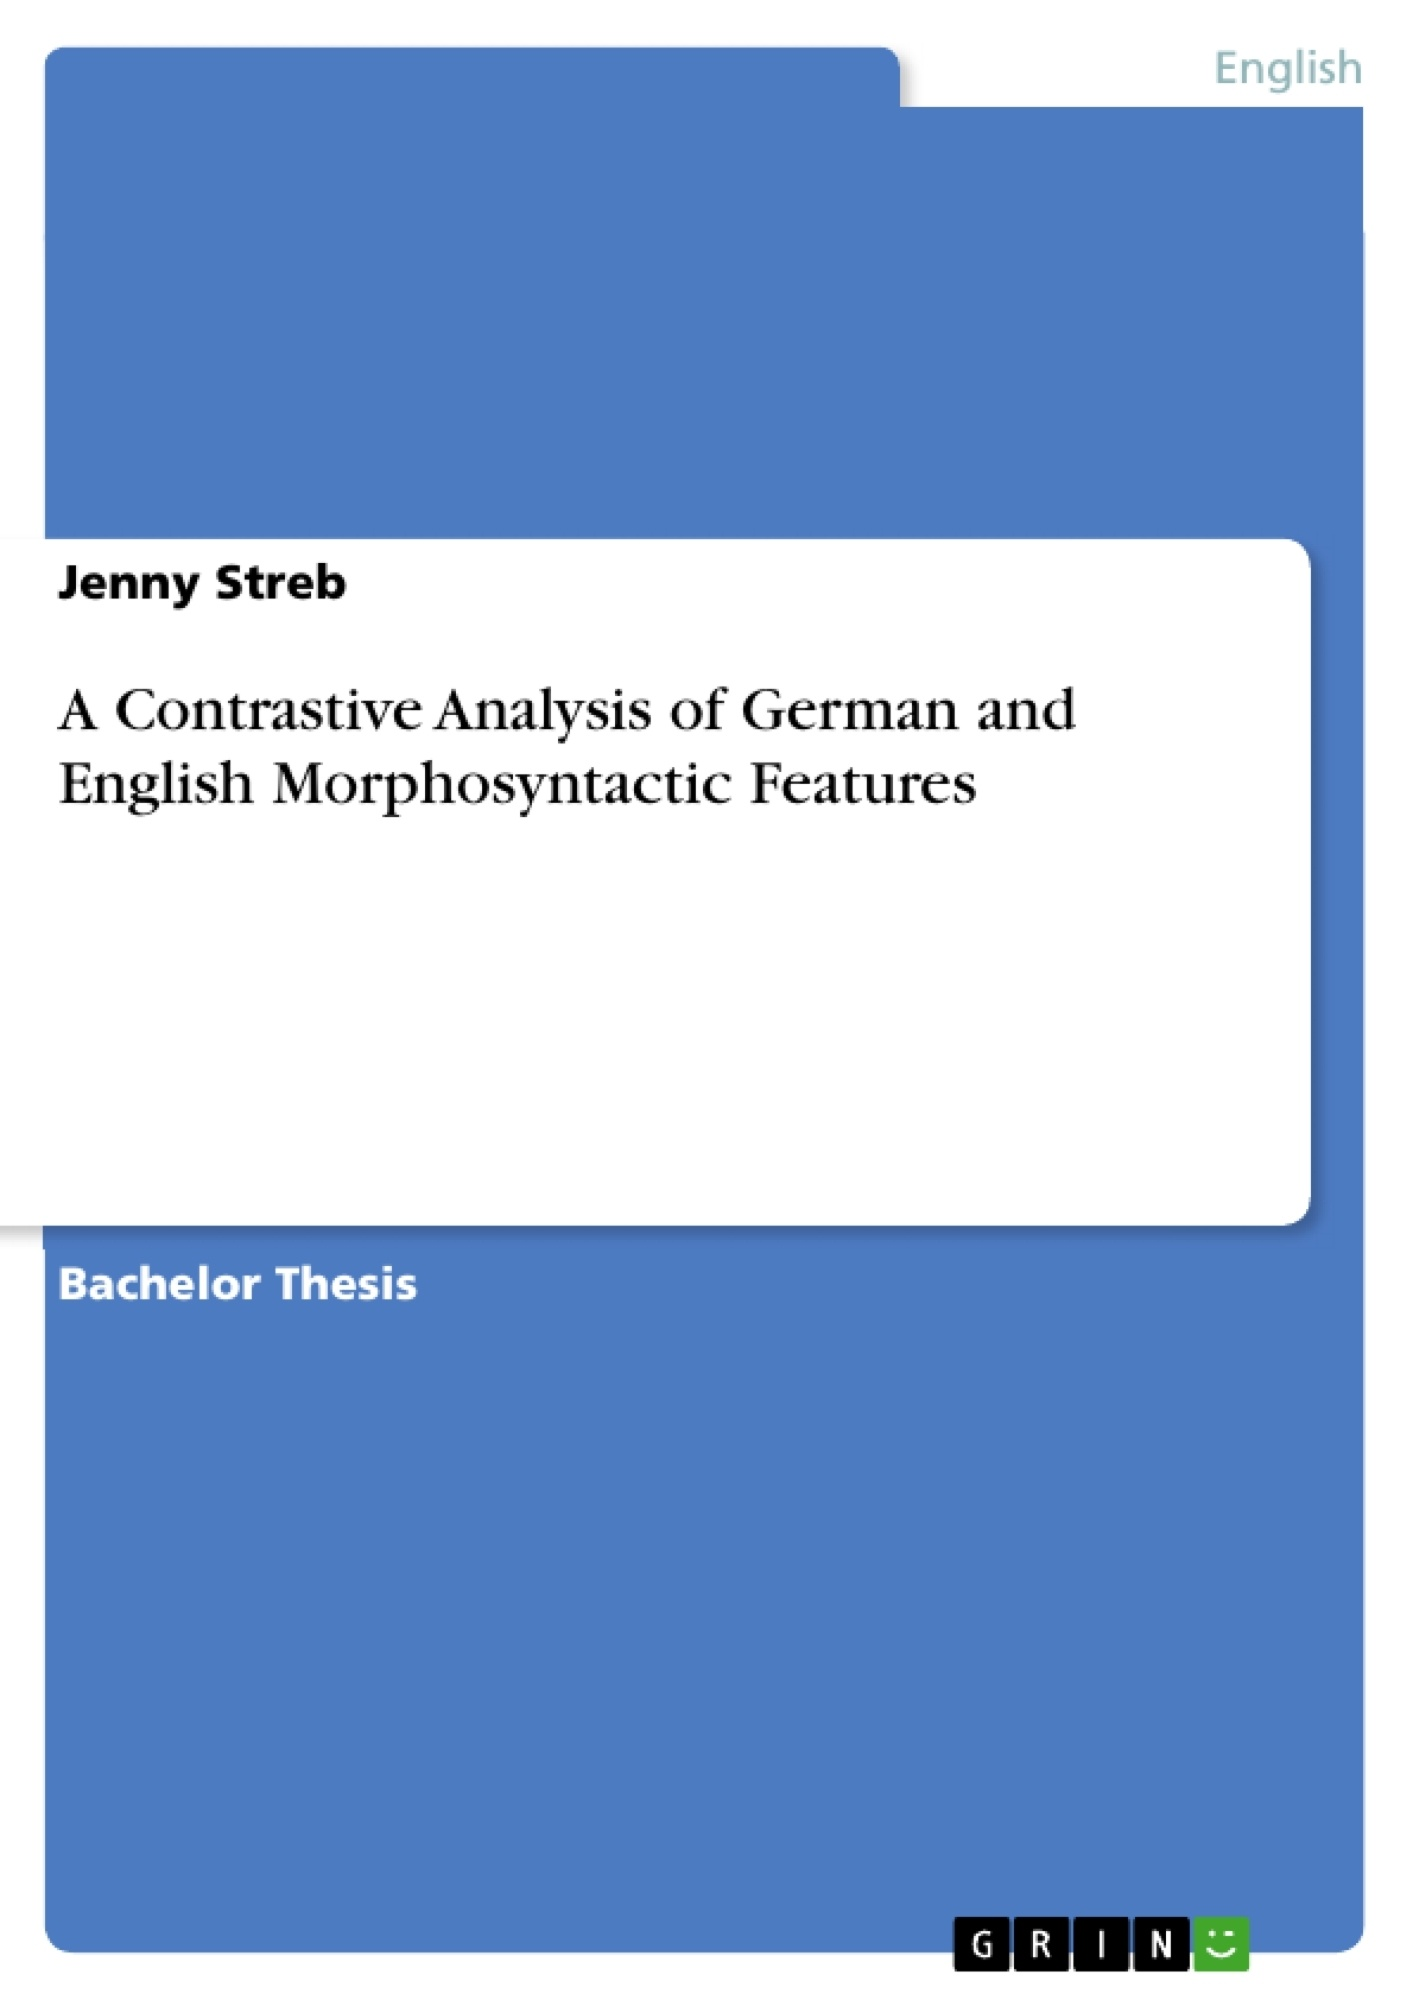 Title: A Contrastive Analysis of German and English Morphosyntactic Features